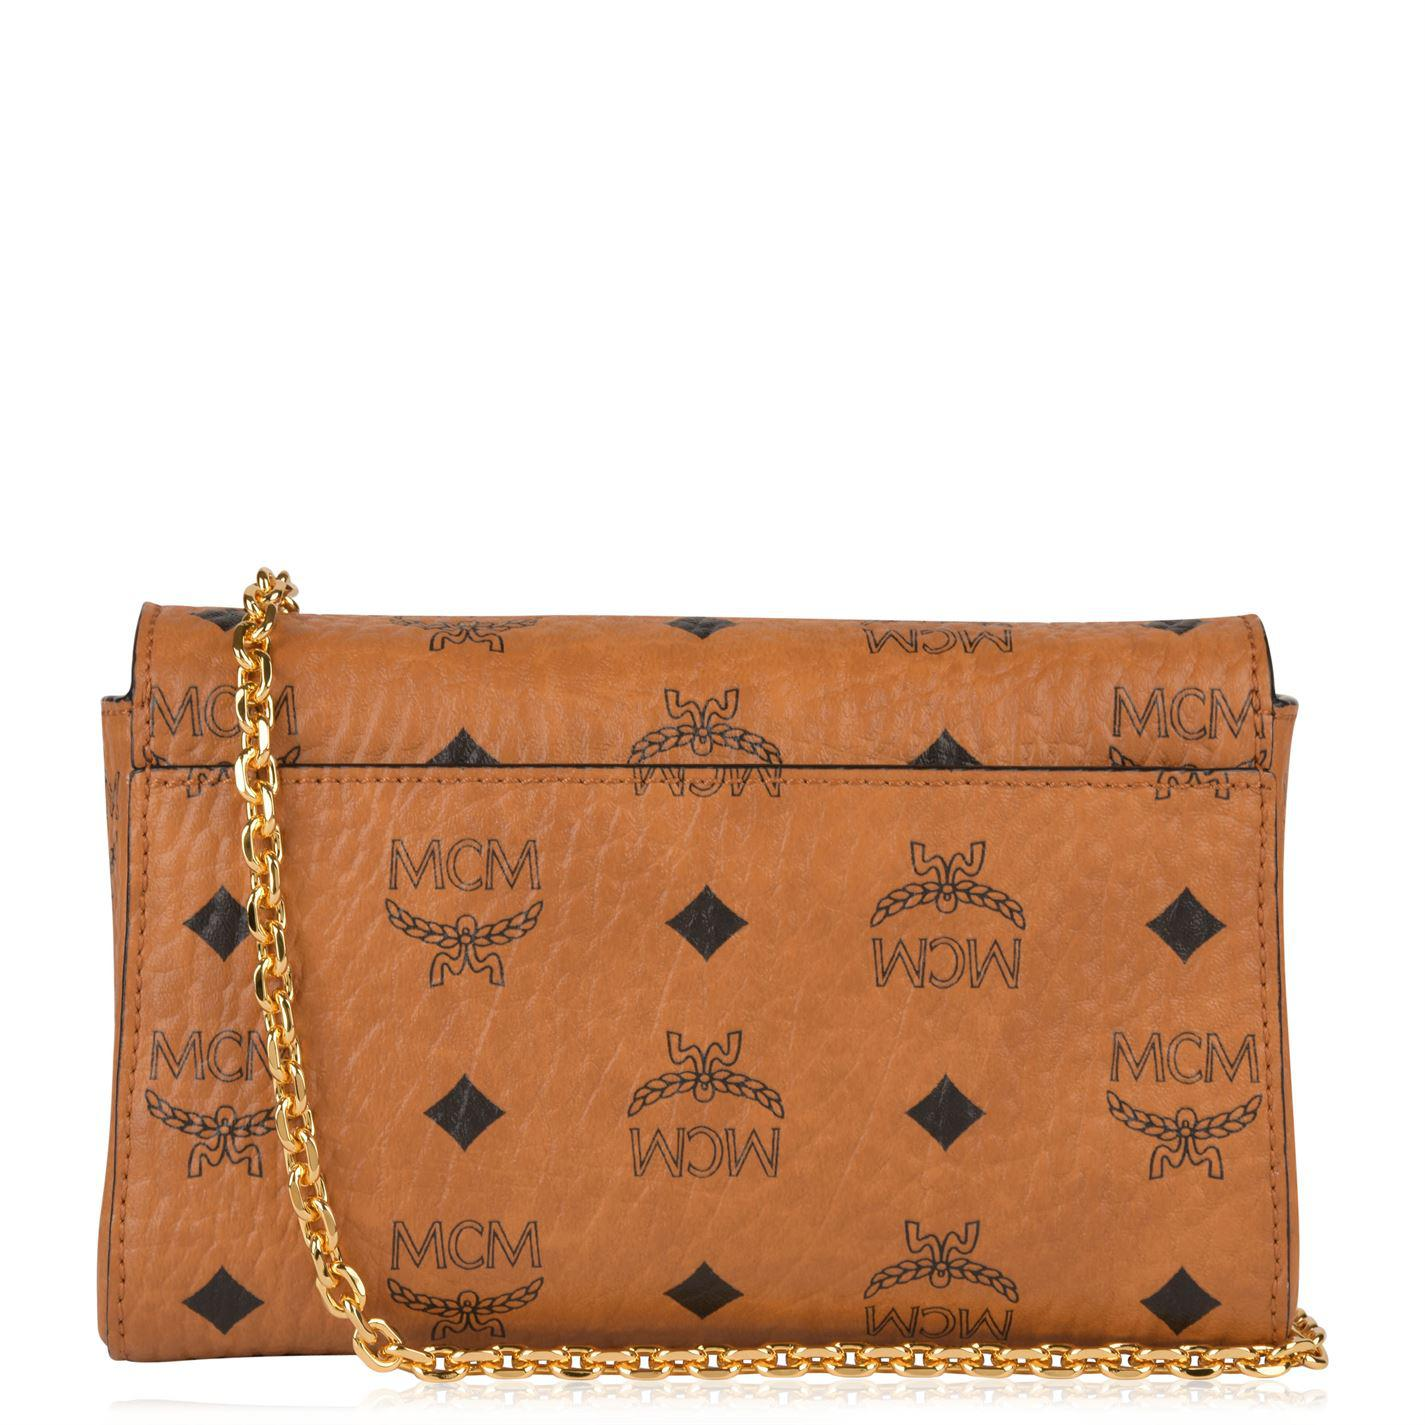 ad426c360 MCM Millie Small Crossbody Bag in Brown - Lyst